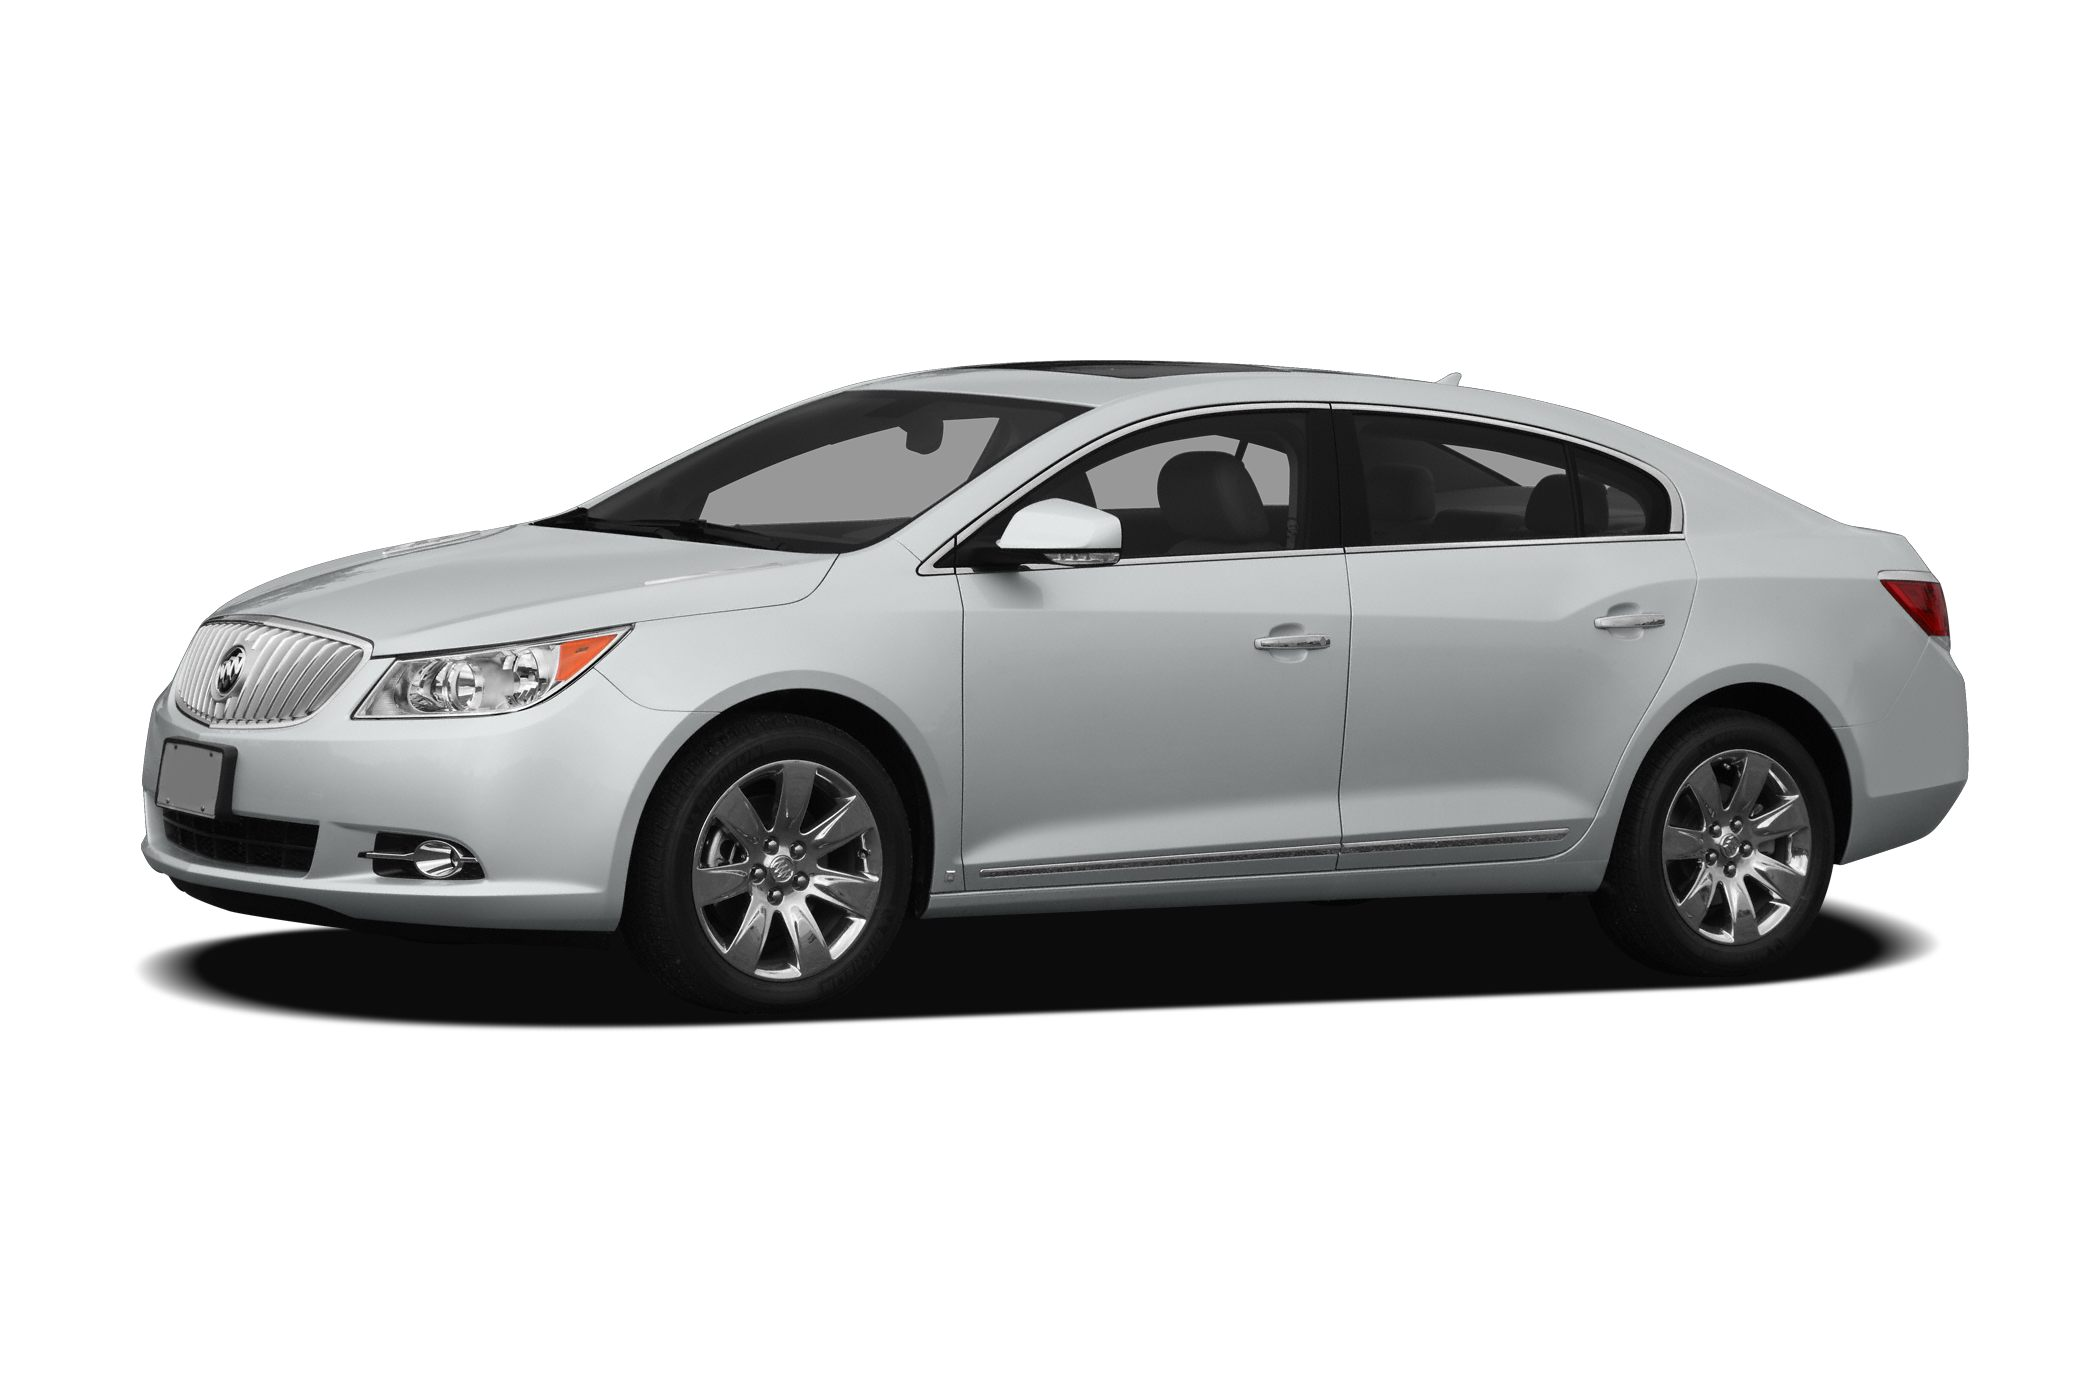 2010 Buick LaCrosse CXL Win a bargain on this 2010 Buick LaCrosse CXL before its too late Comfor